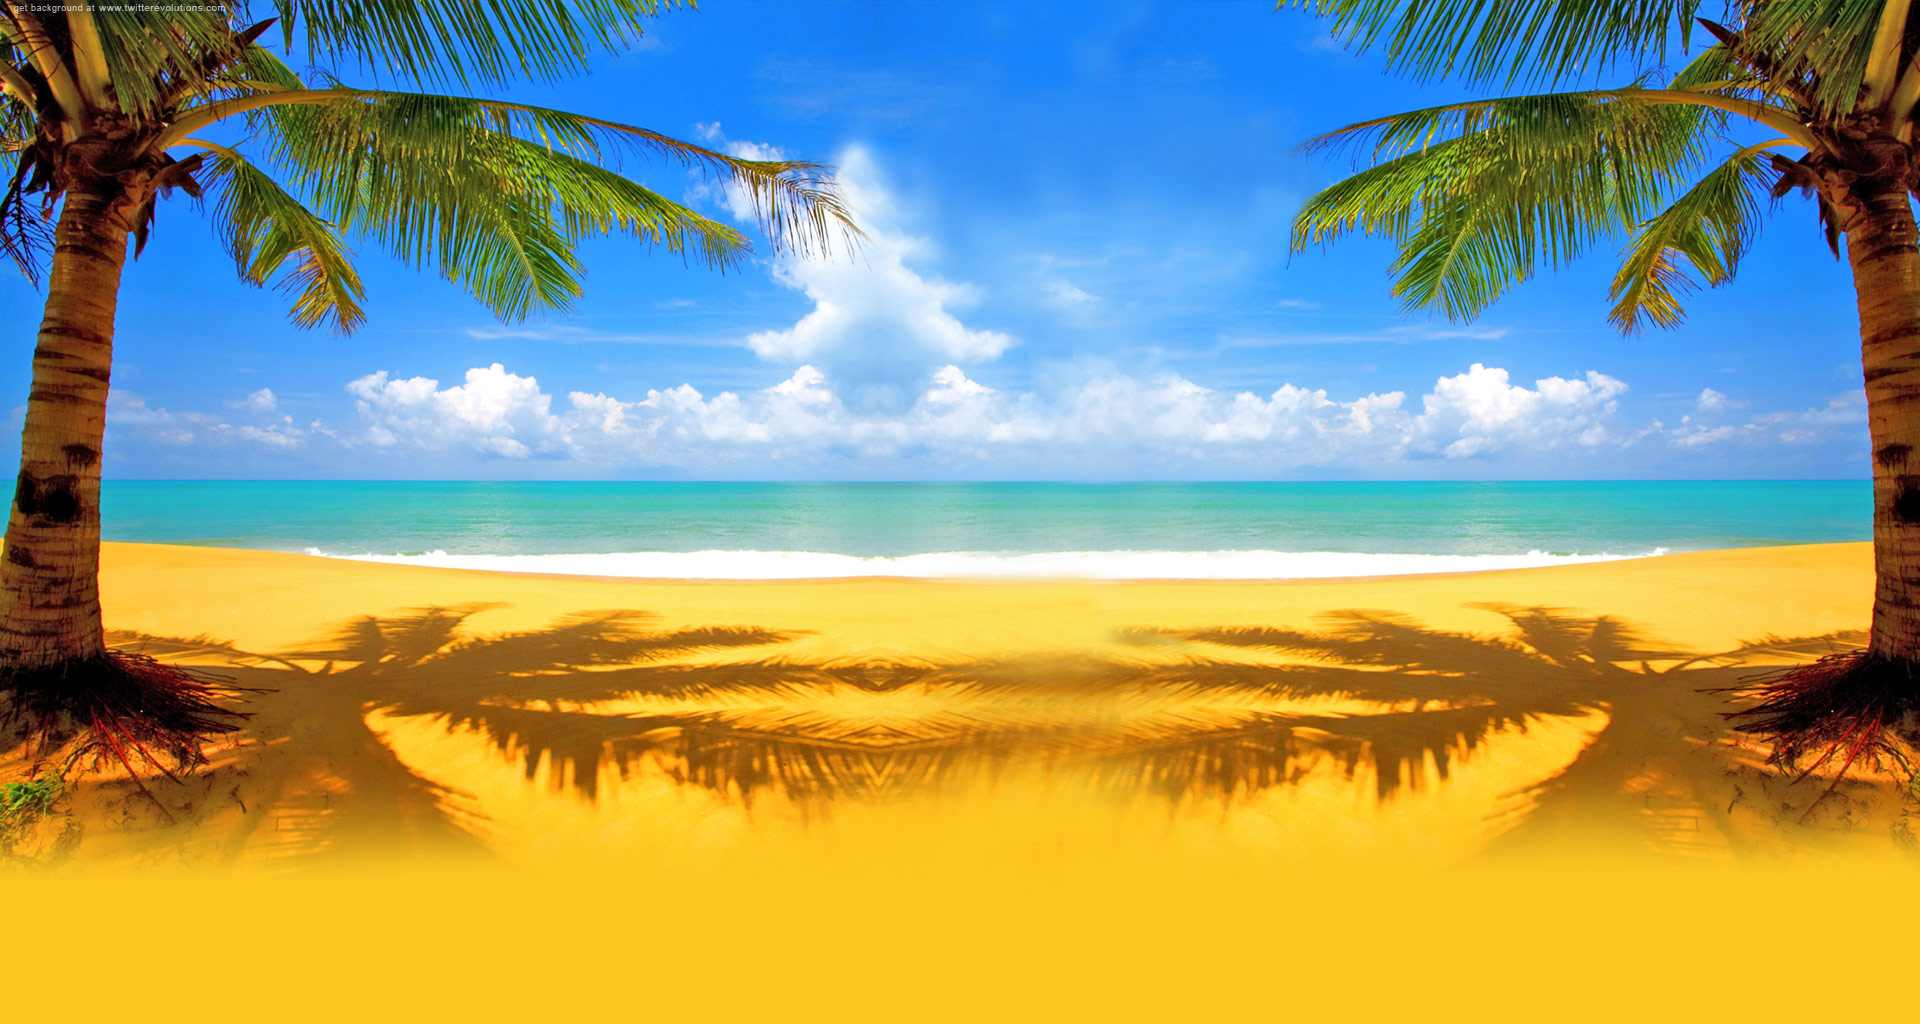 Beach Theme Background Related Keywords amp Suggestions 1920x1024